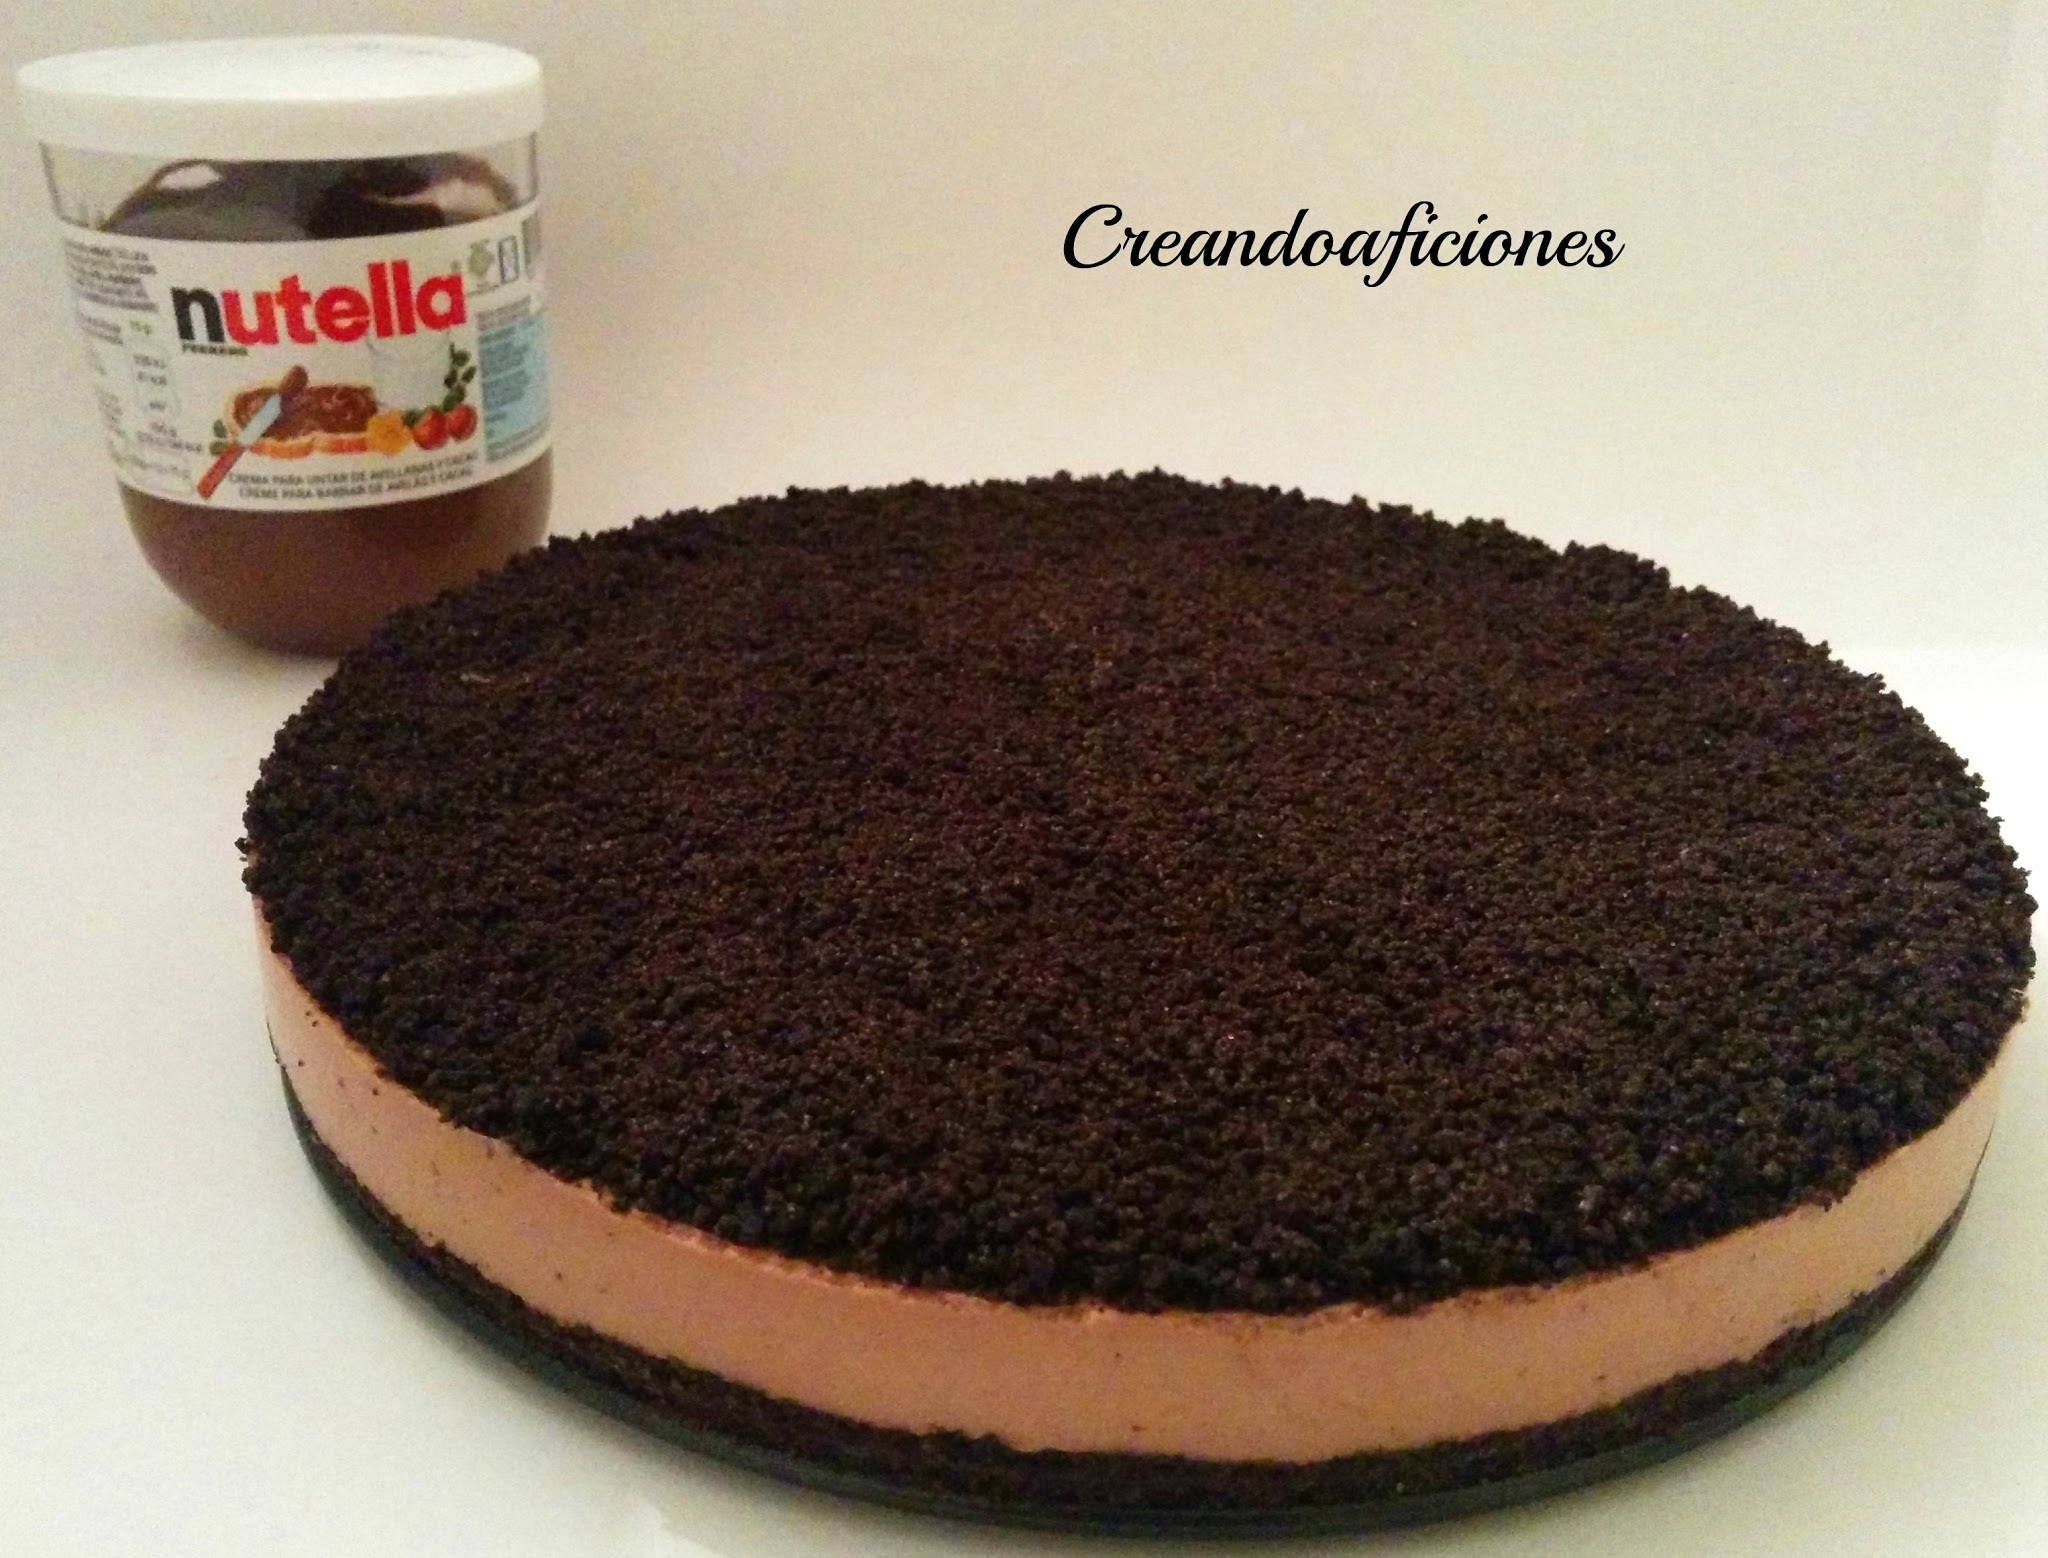 Tarta de Nutella y galletas Oreo